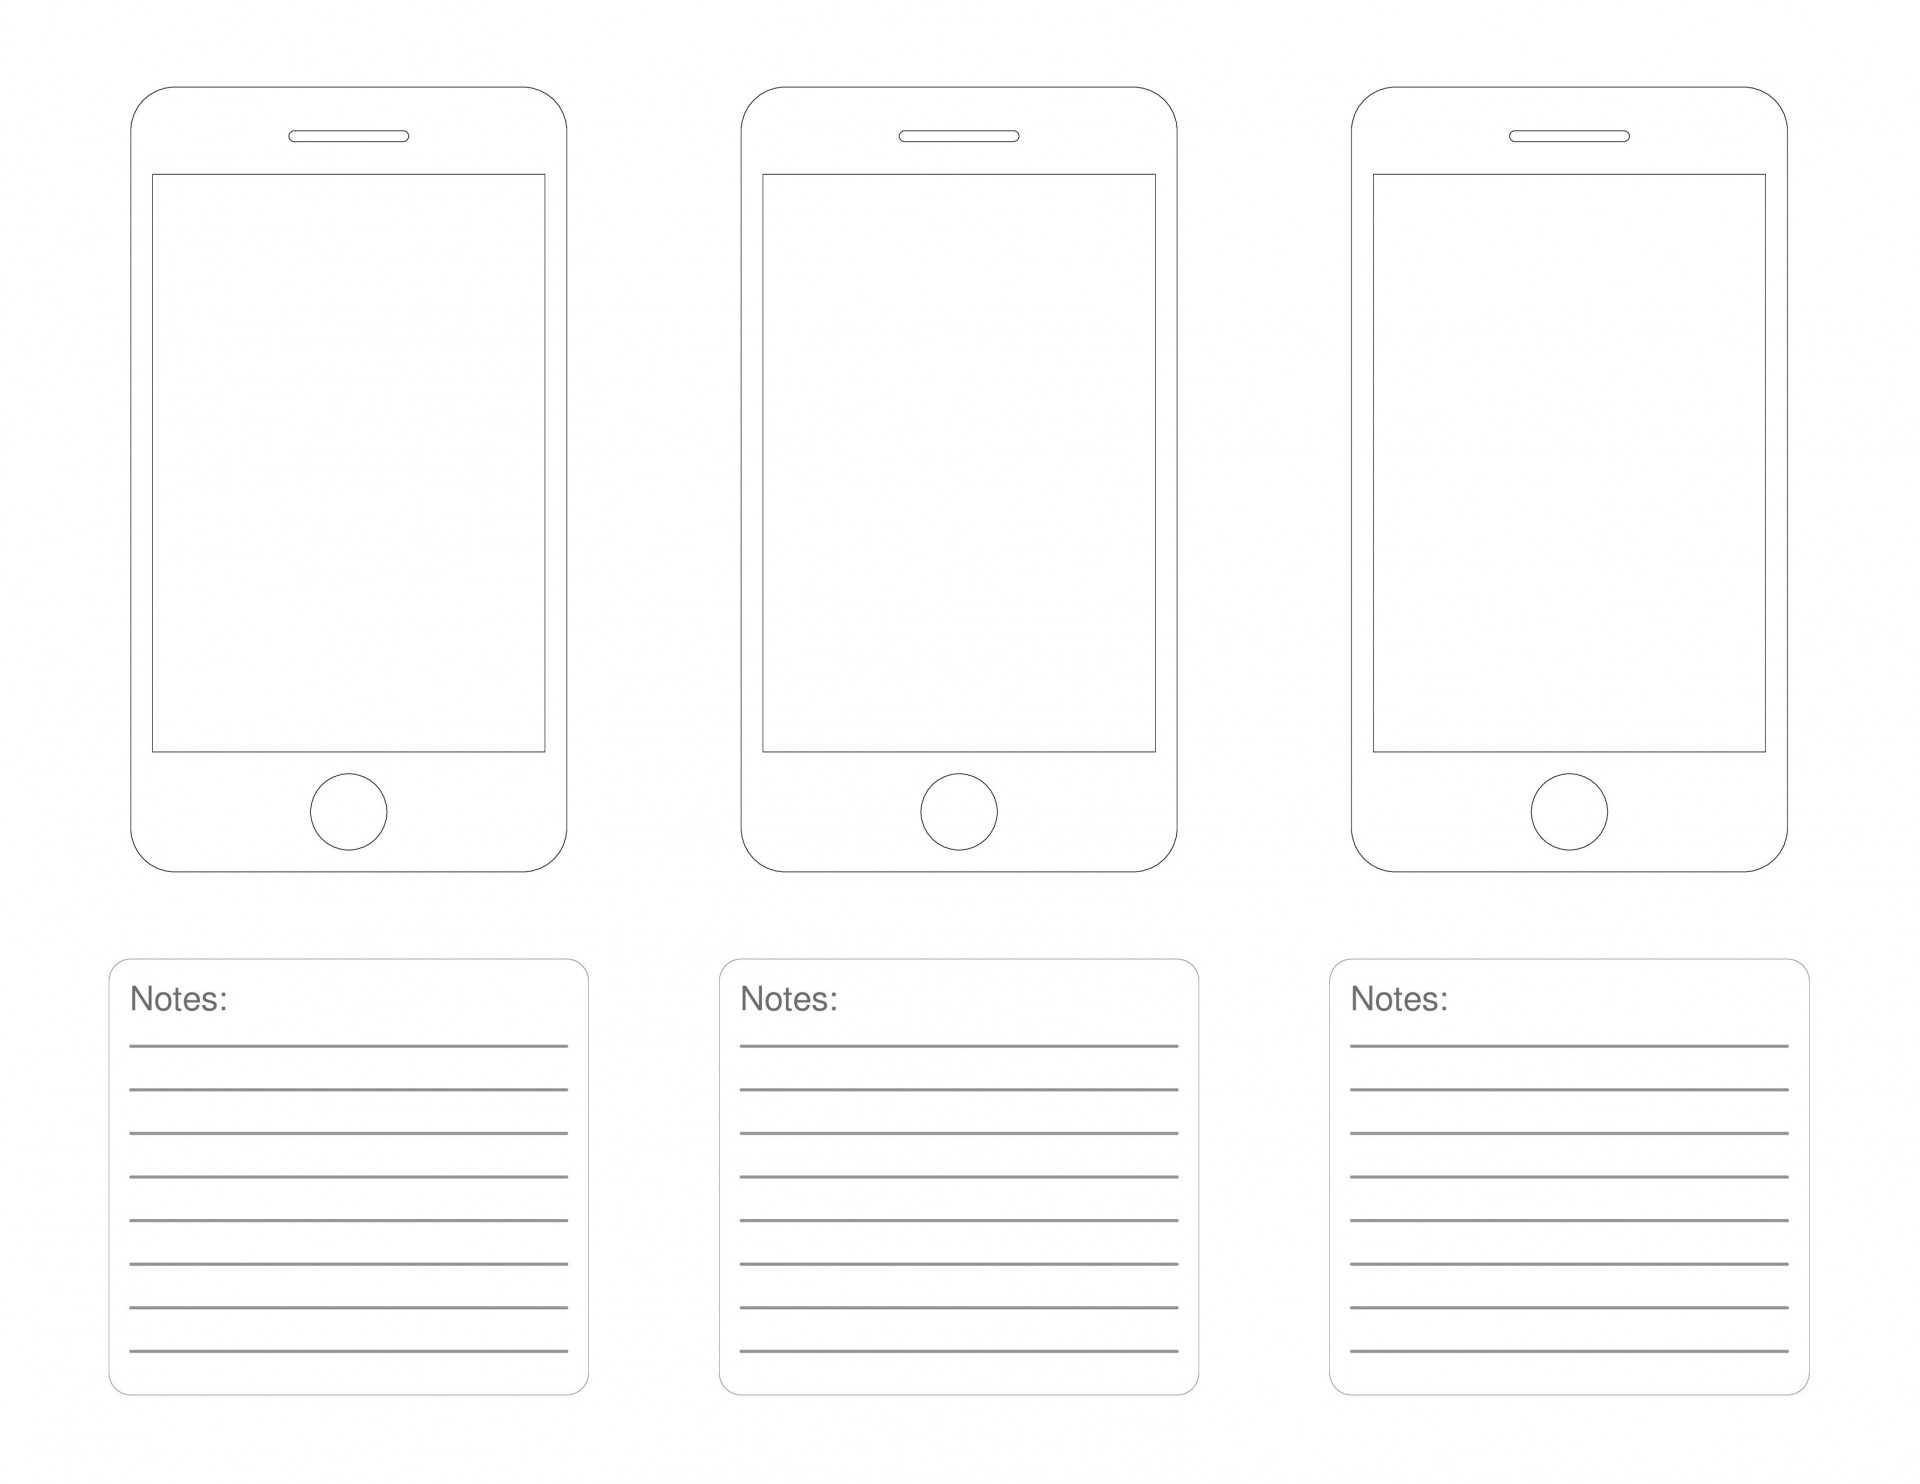 000 Dreaded Iphone App Design Template Highest Clarity  Templates Io Sketch Psd Free Download1920